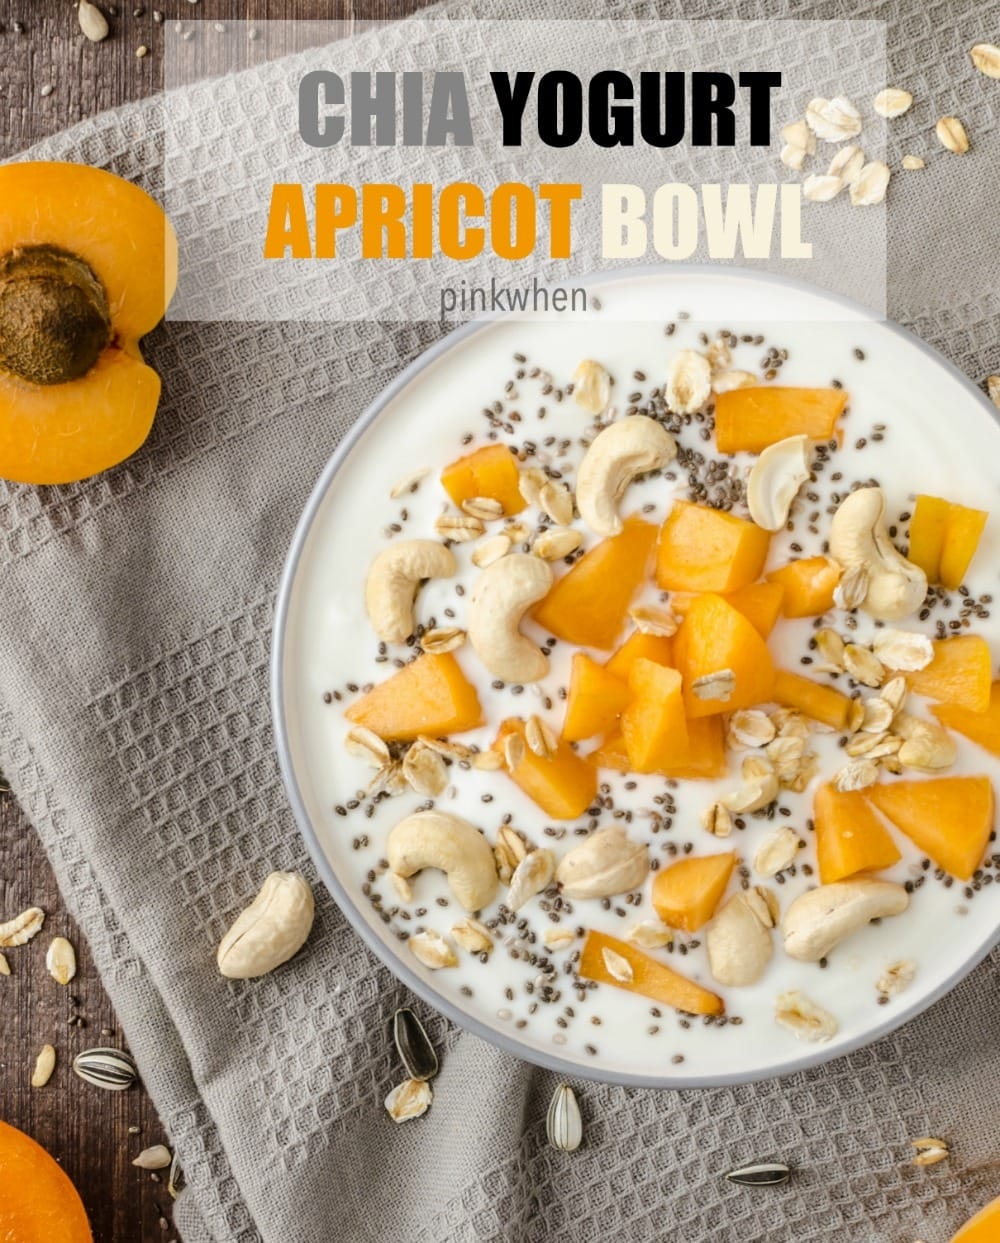 Chia Yogurt Apricot Bowl - a delicious high protein breakfast bowl recipe.